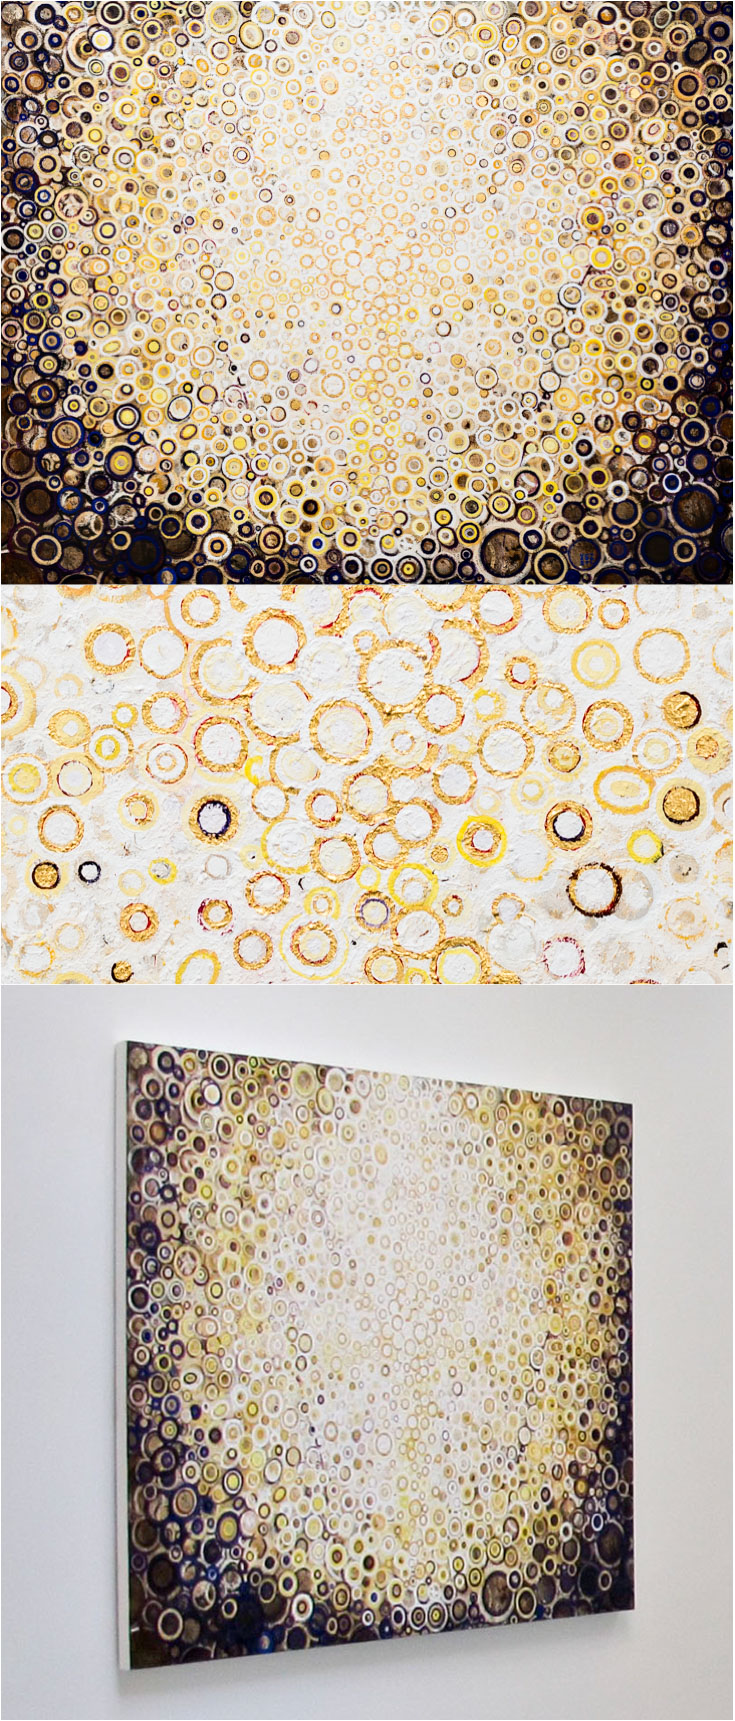 Corona | A painting by Randall Stoltzfus | With detail showing gold leaf and install photo